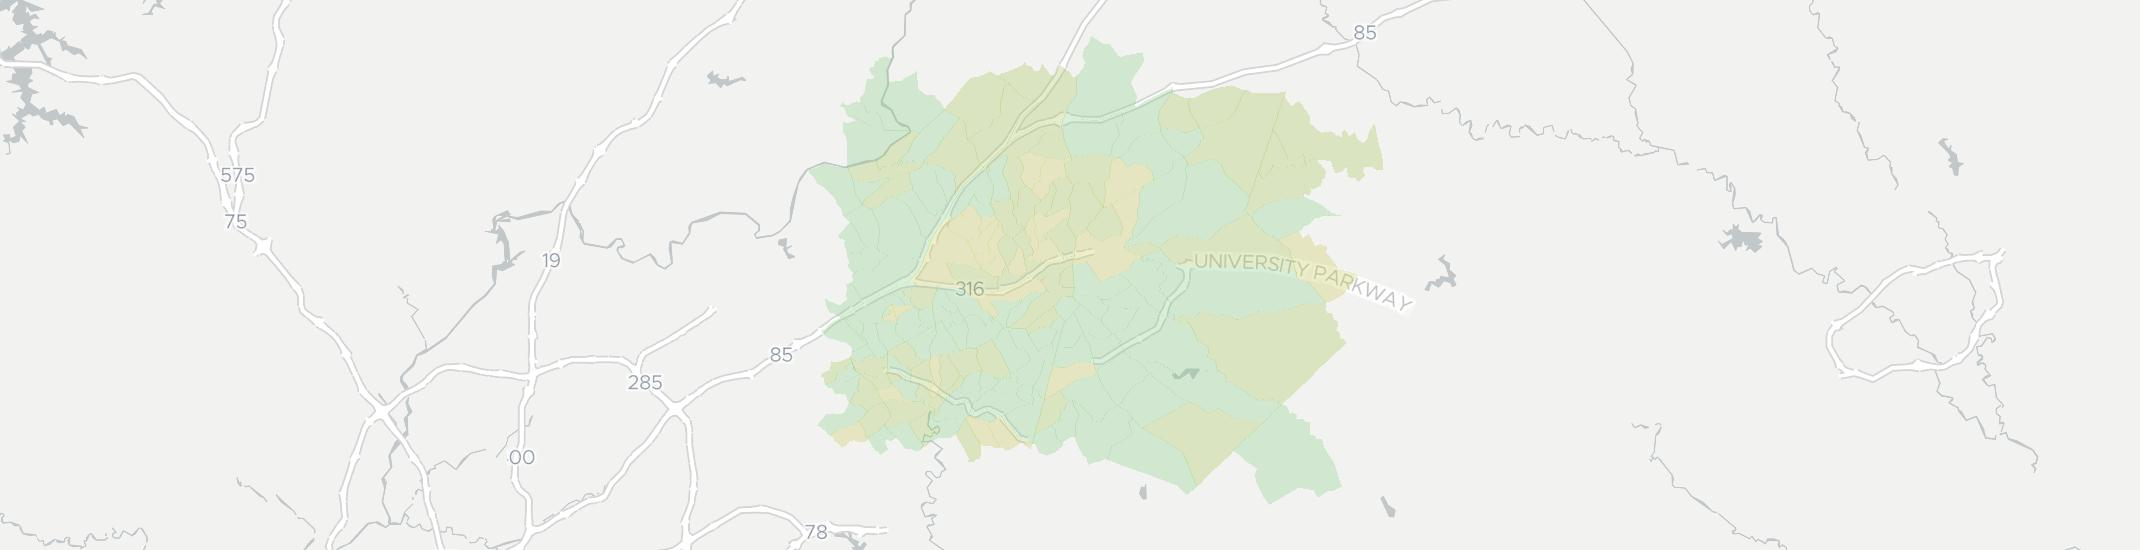 Map Of Georgia Gwinnett College.The 8 Best Internet Service Providers In Lawrenceville In Aug 2019